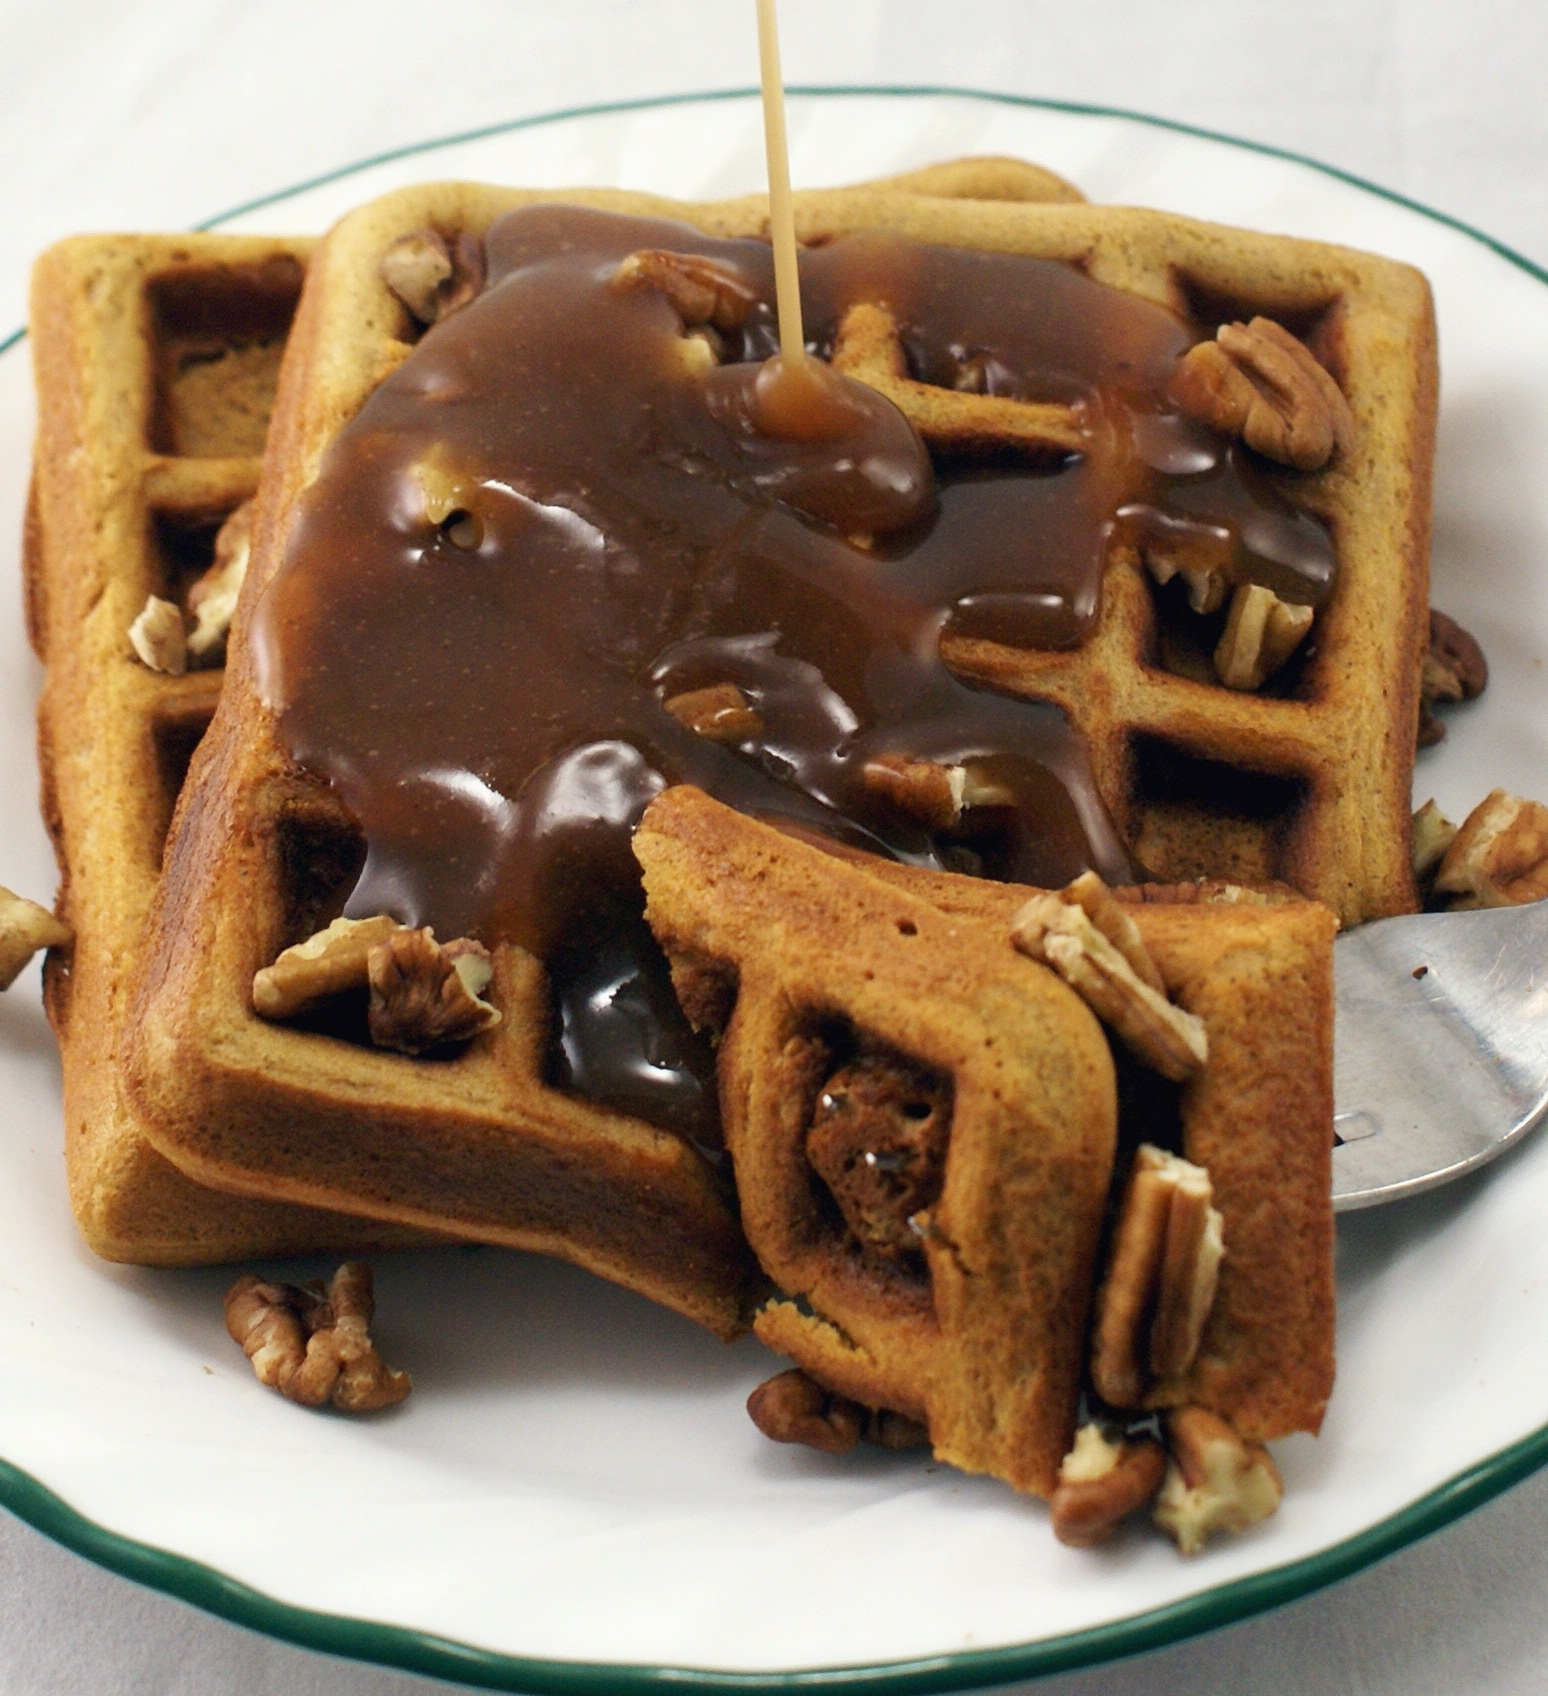 Gingerbread Waffles with Cinnamon-Orange Syrup and Chopped Pecans